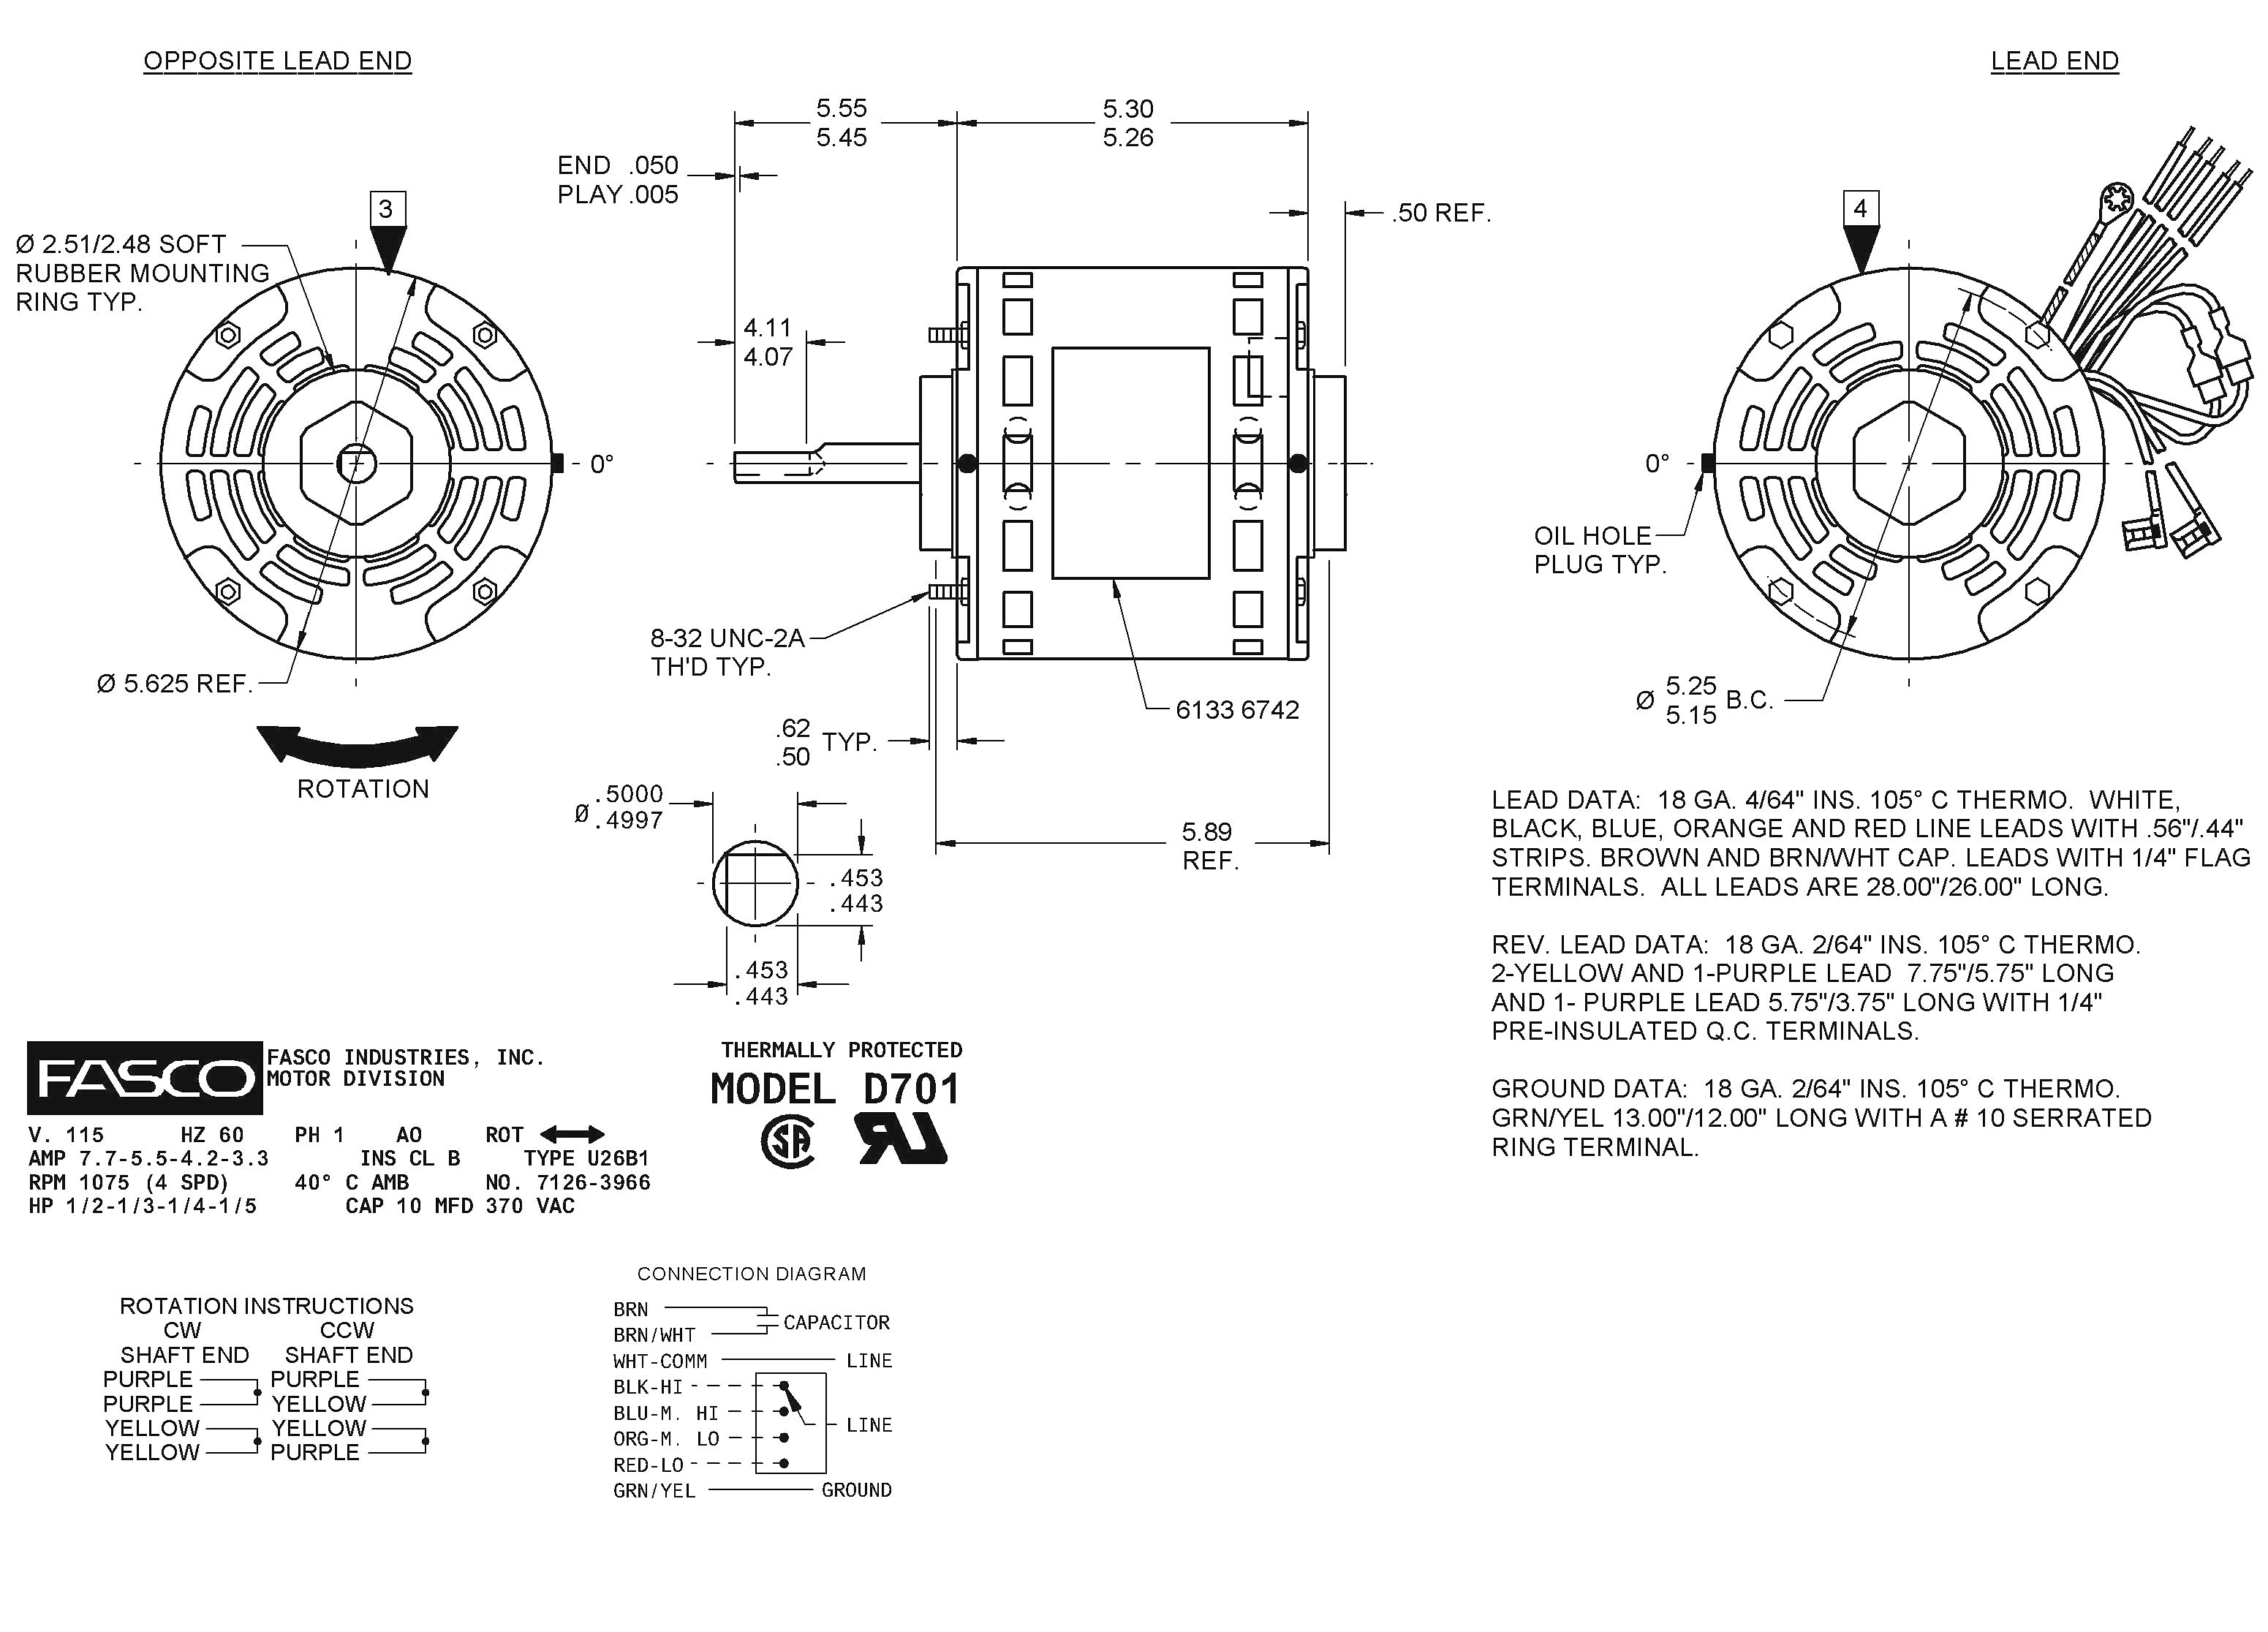 emerson electric motors wiring diagram Collection-Emerson Wiring Diagram Electric Motor Best Inspiration 3-e